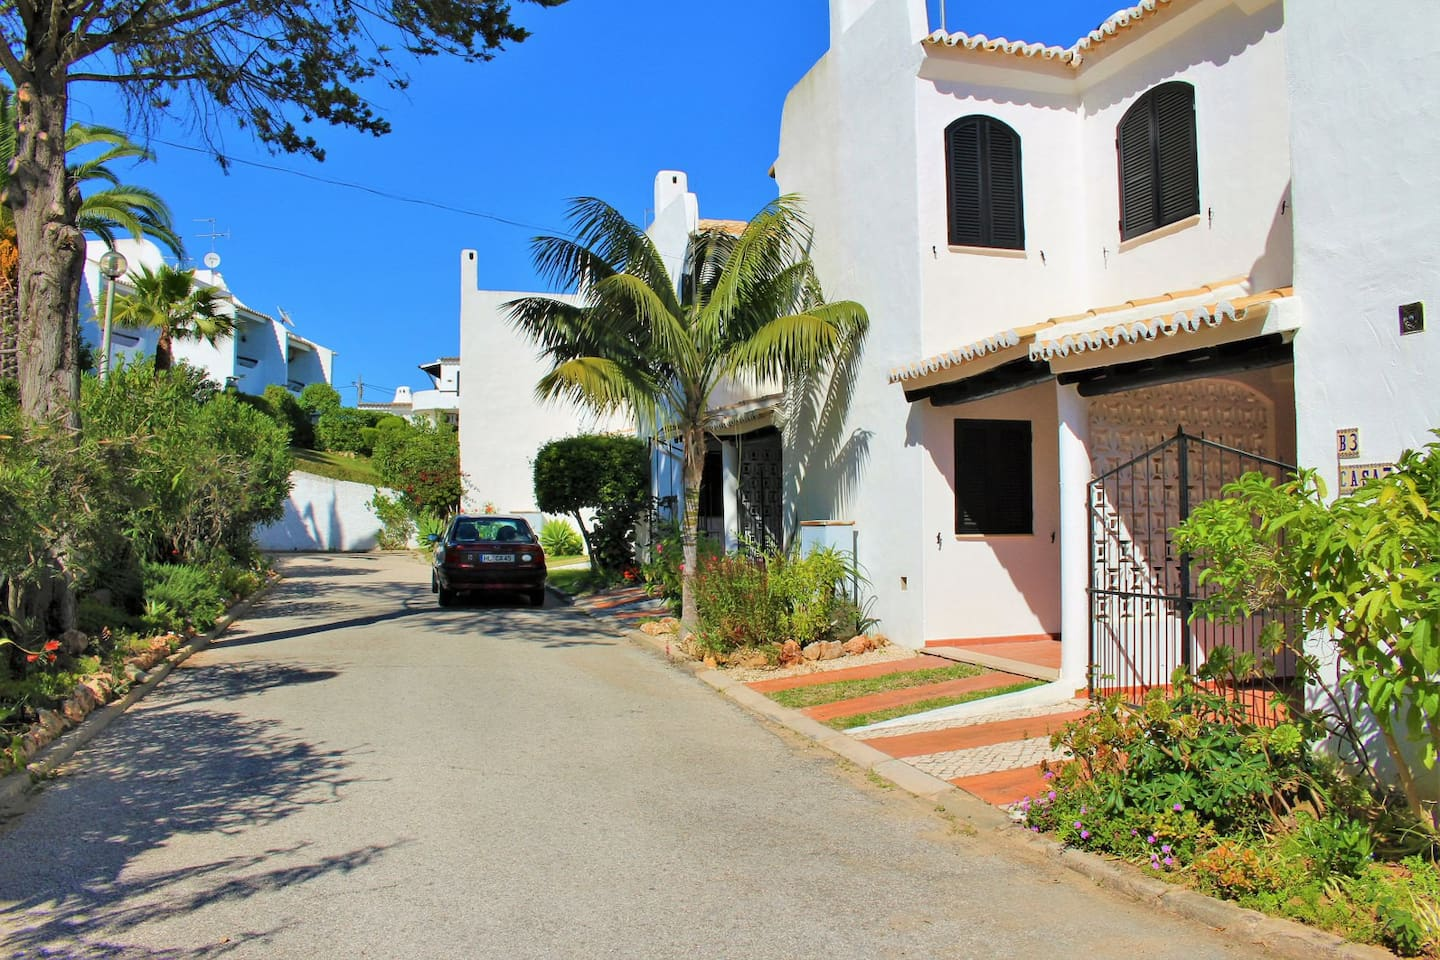 Townhouse close to the beach